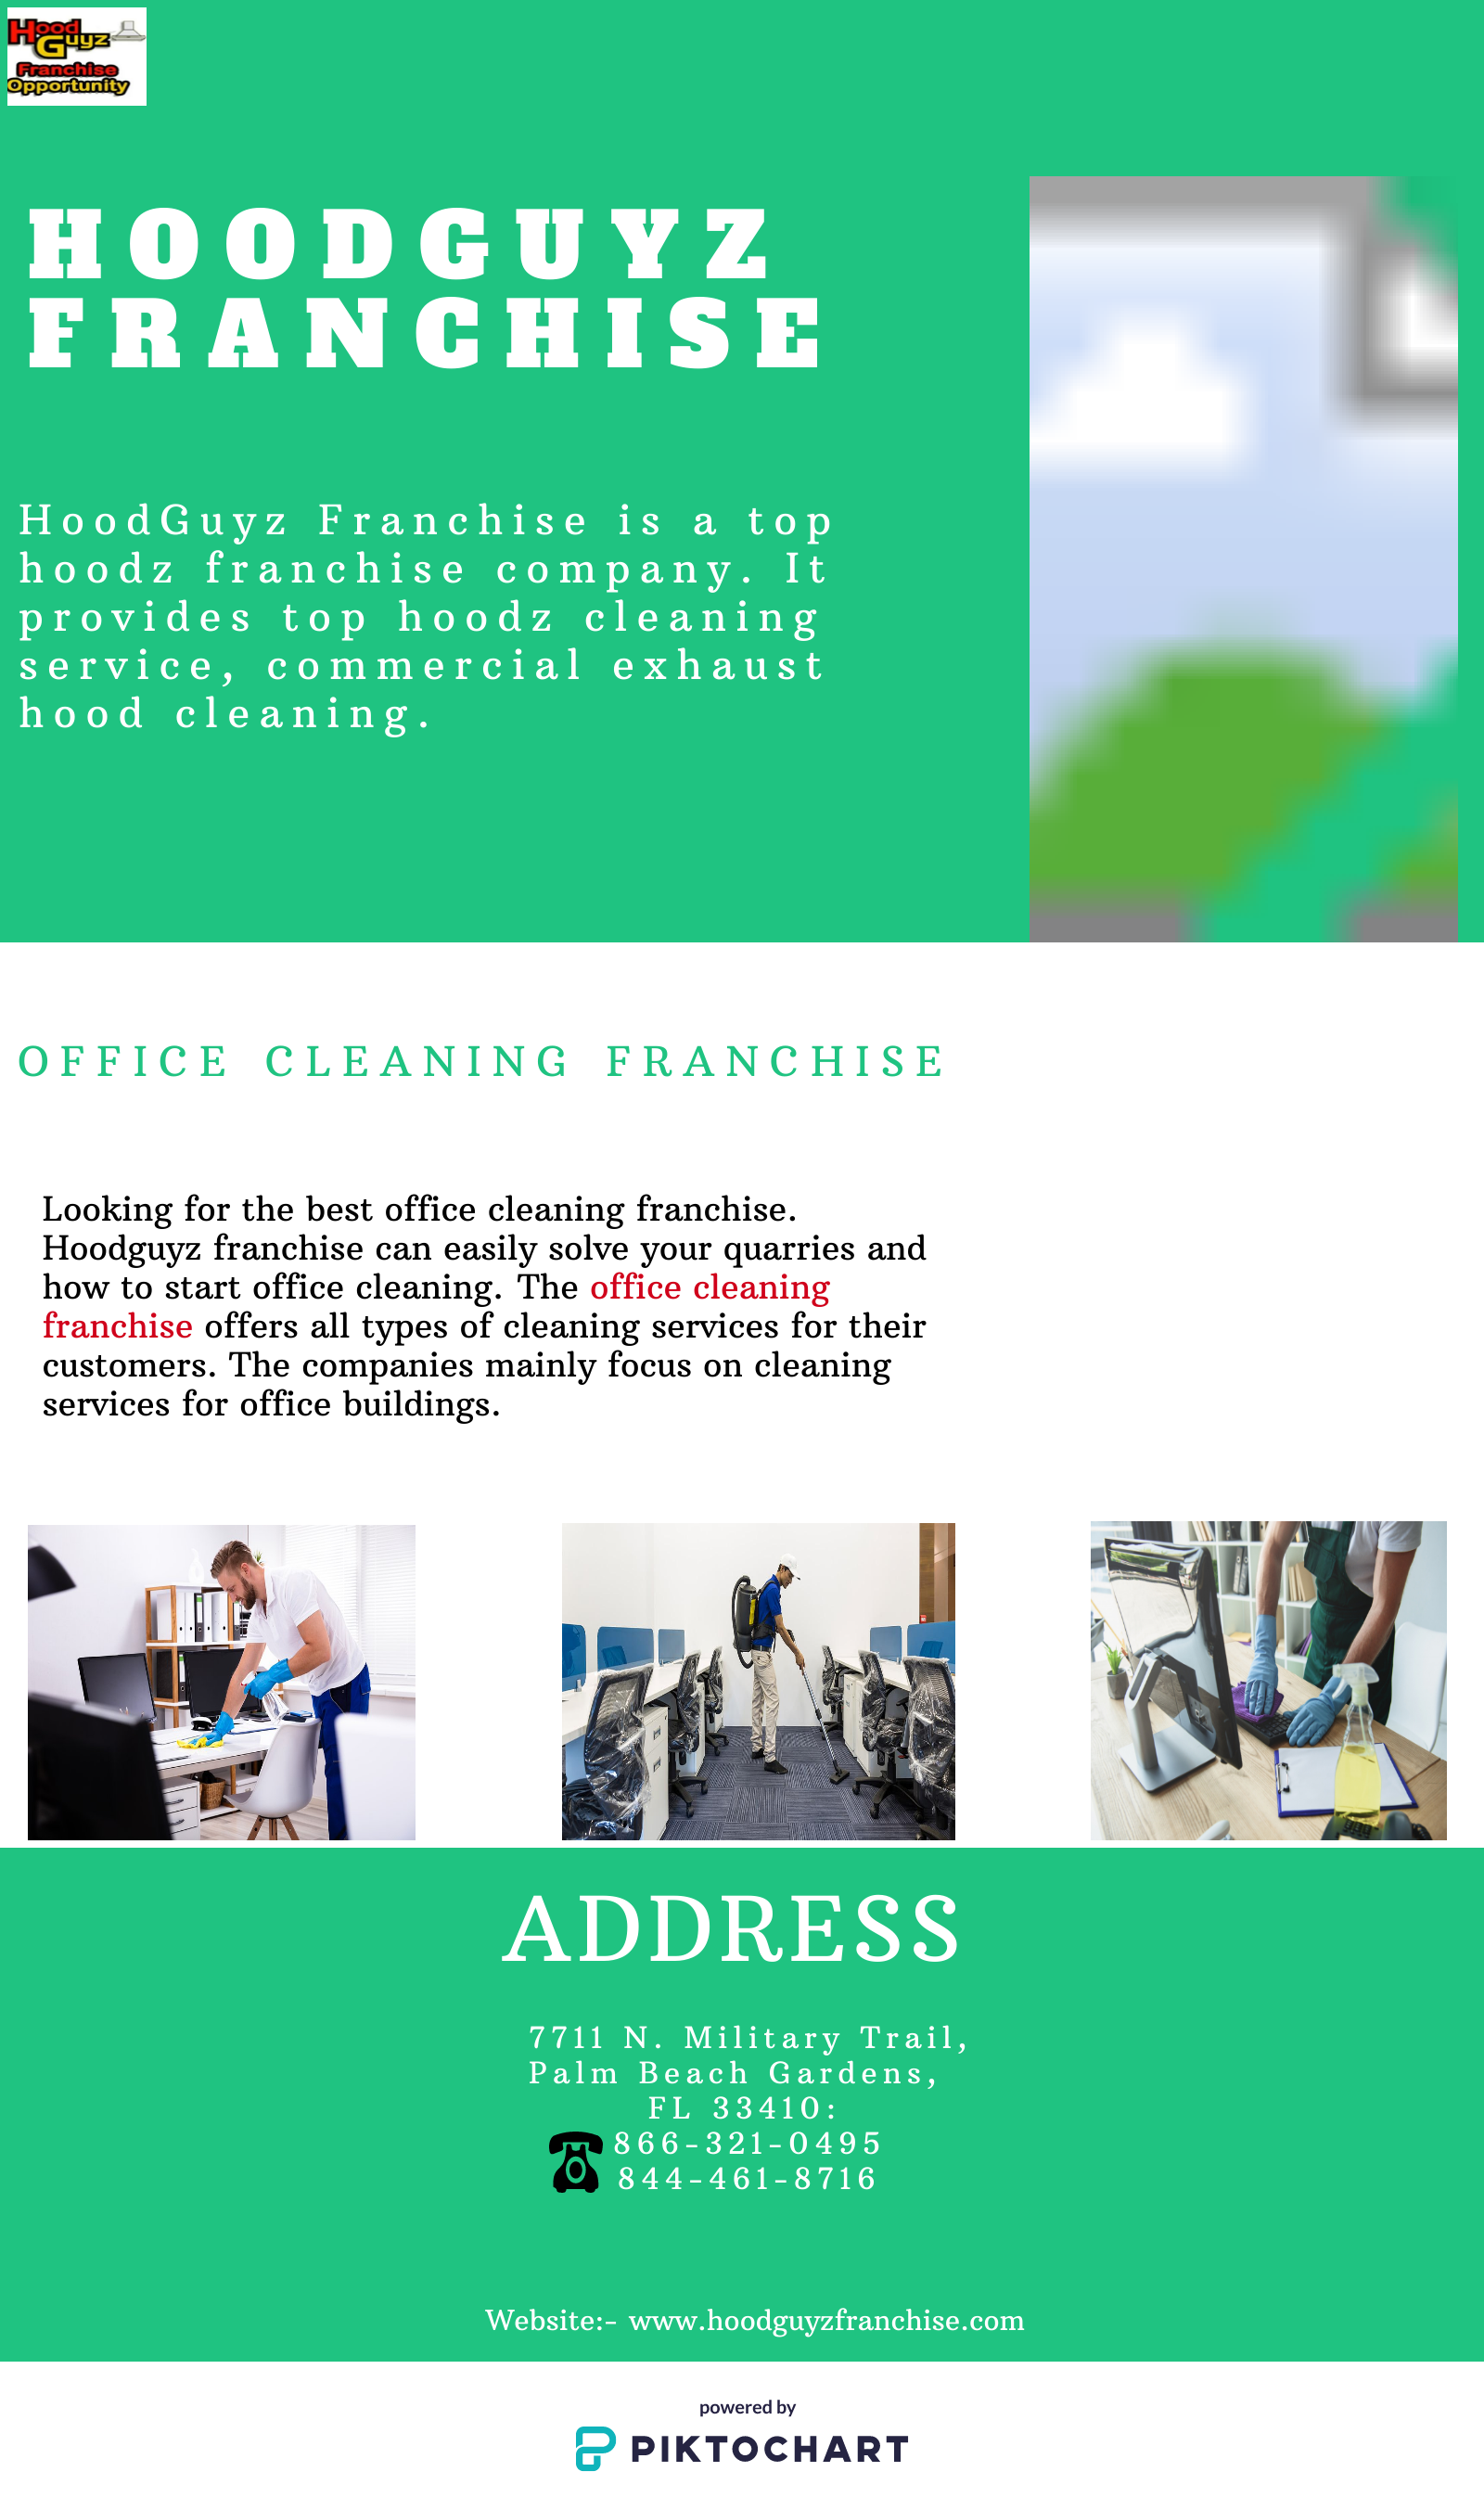 Franchise Opportunity in the United States